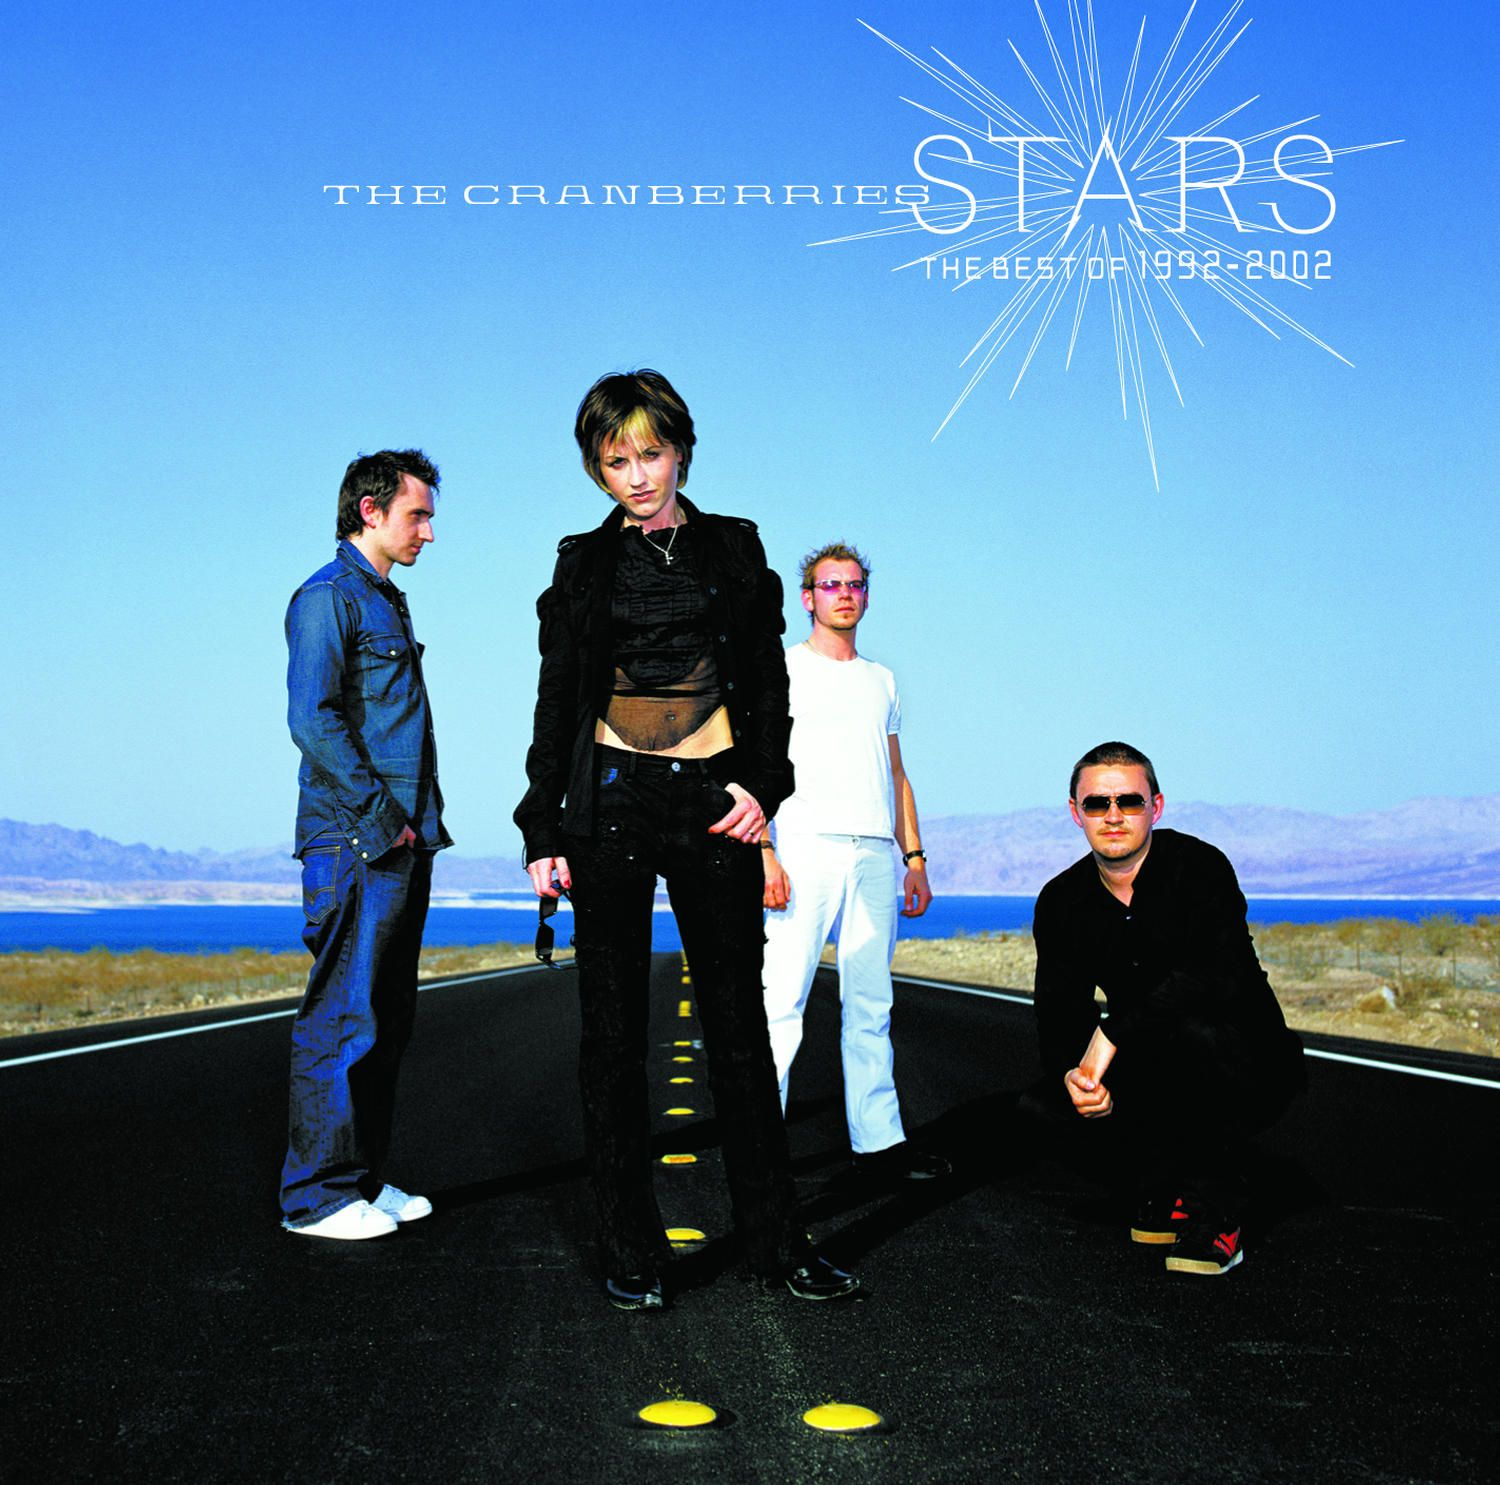 The Cranberries - Stars The Best Of 1992-2002 album cover